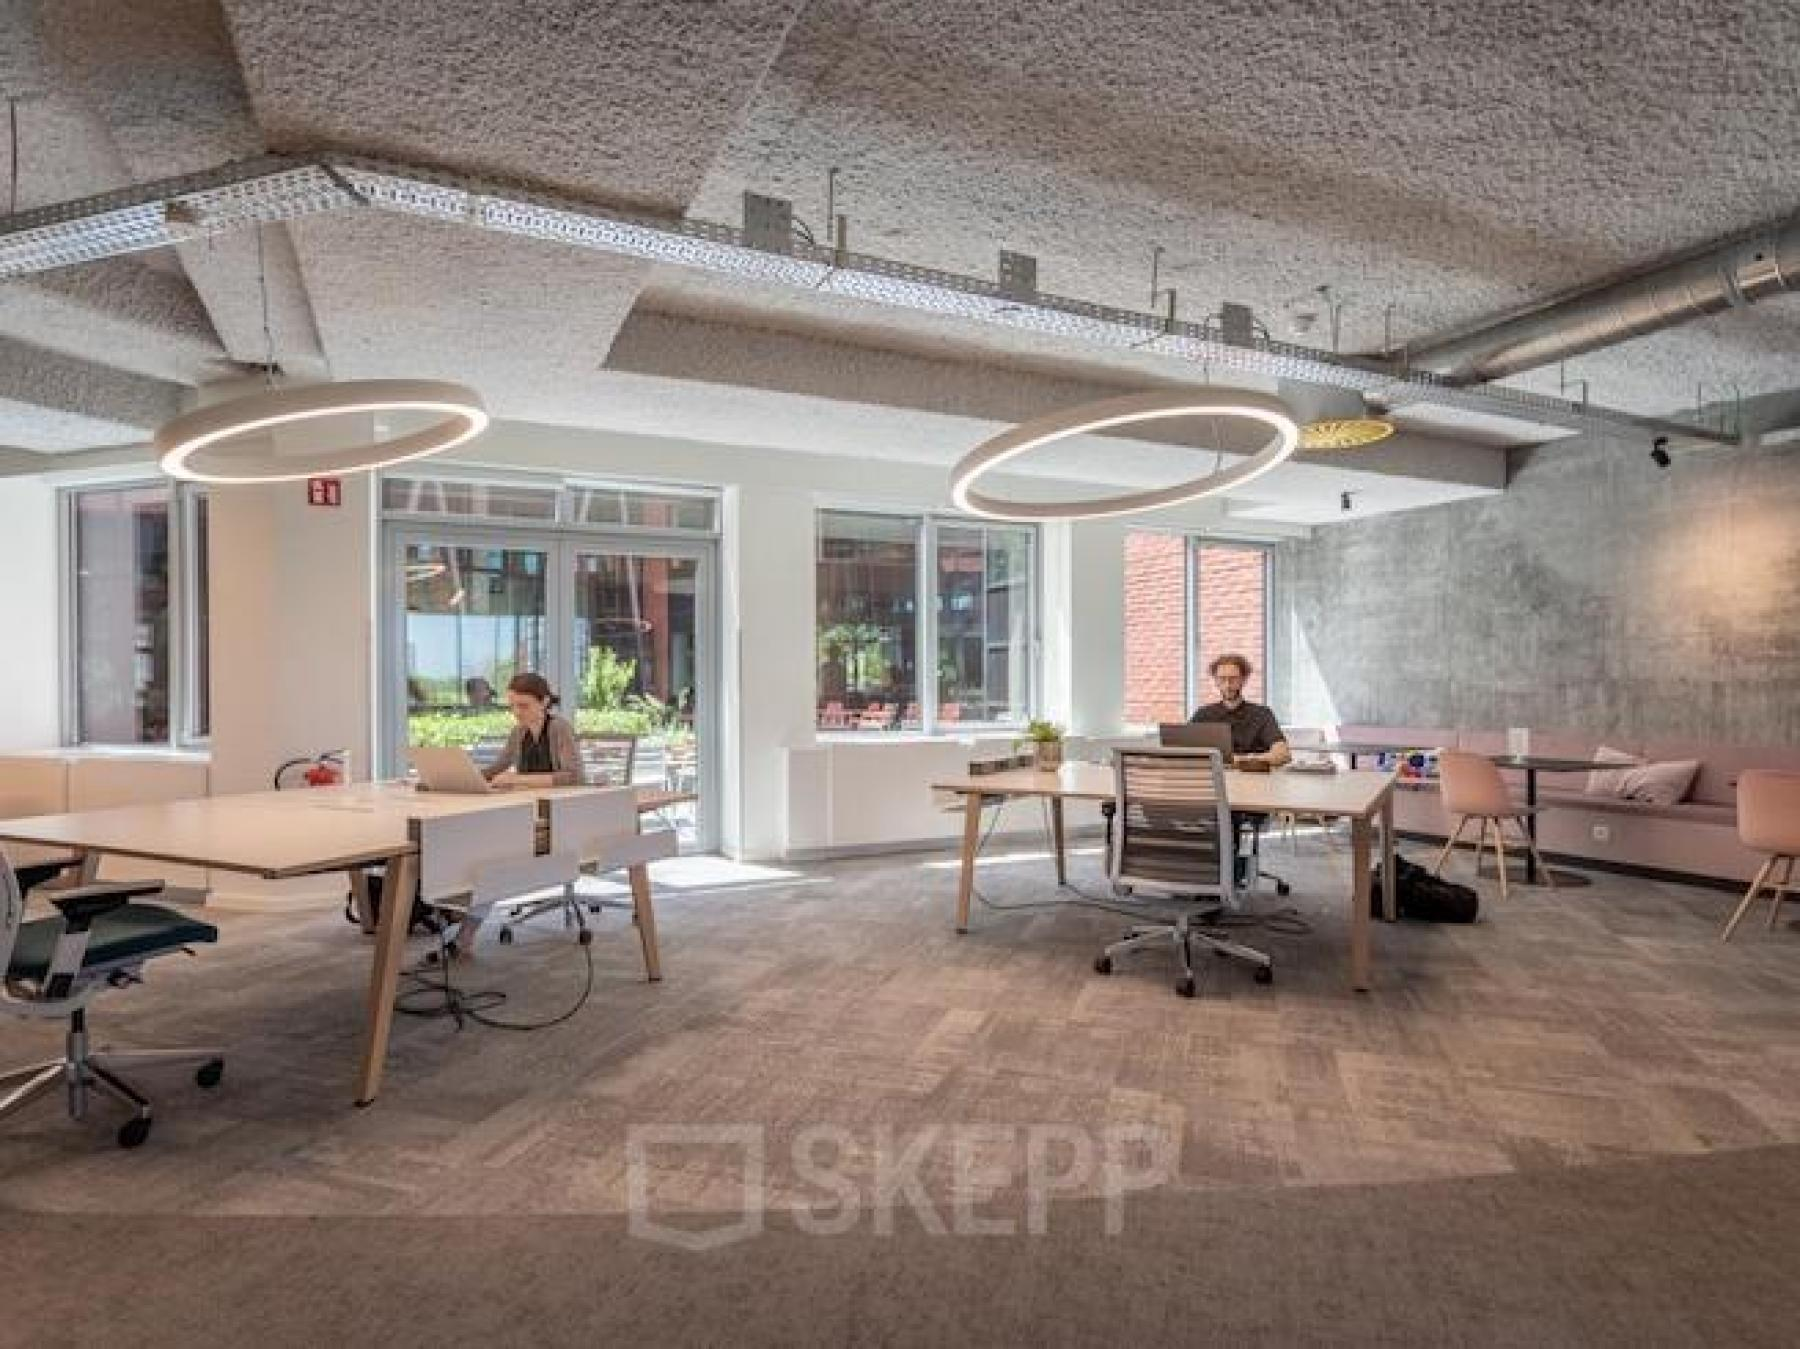 SKEPP virtual tour